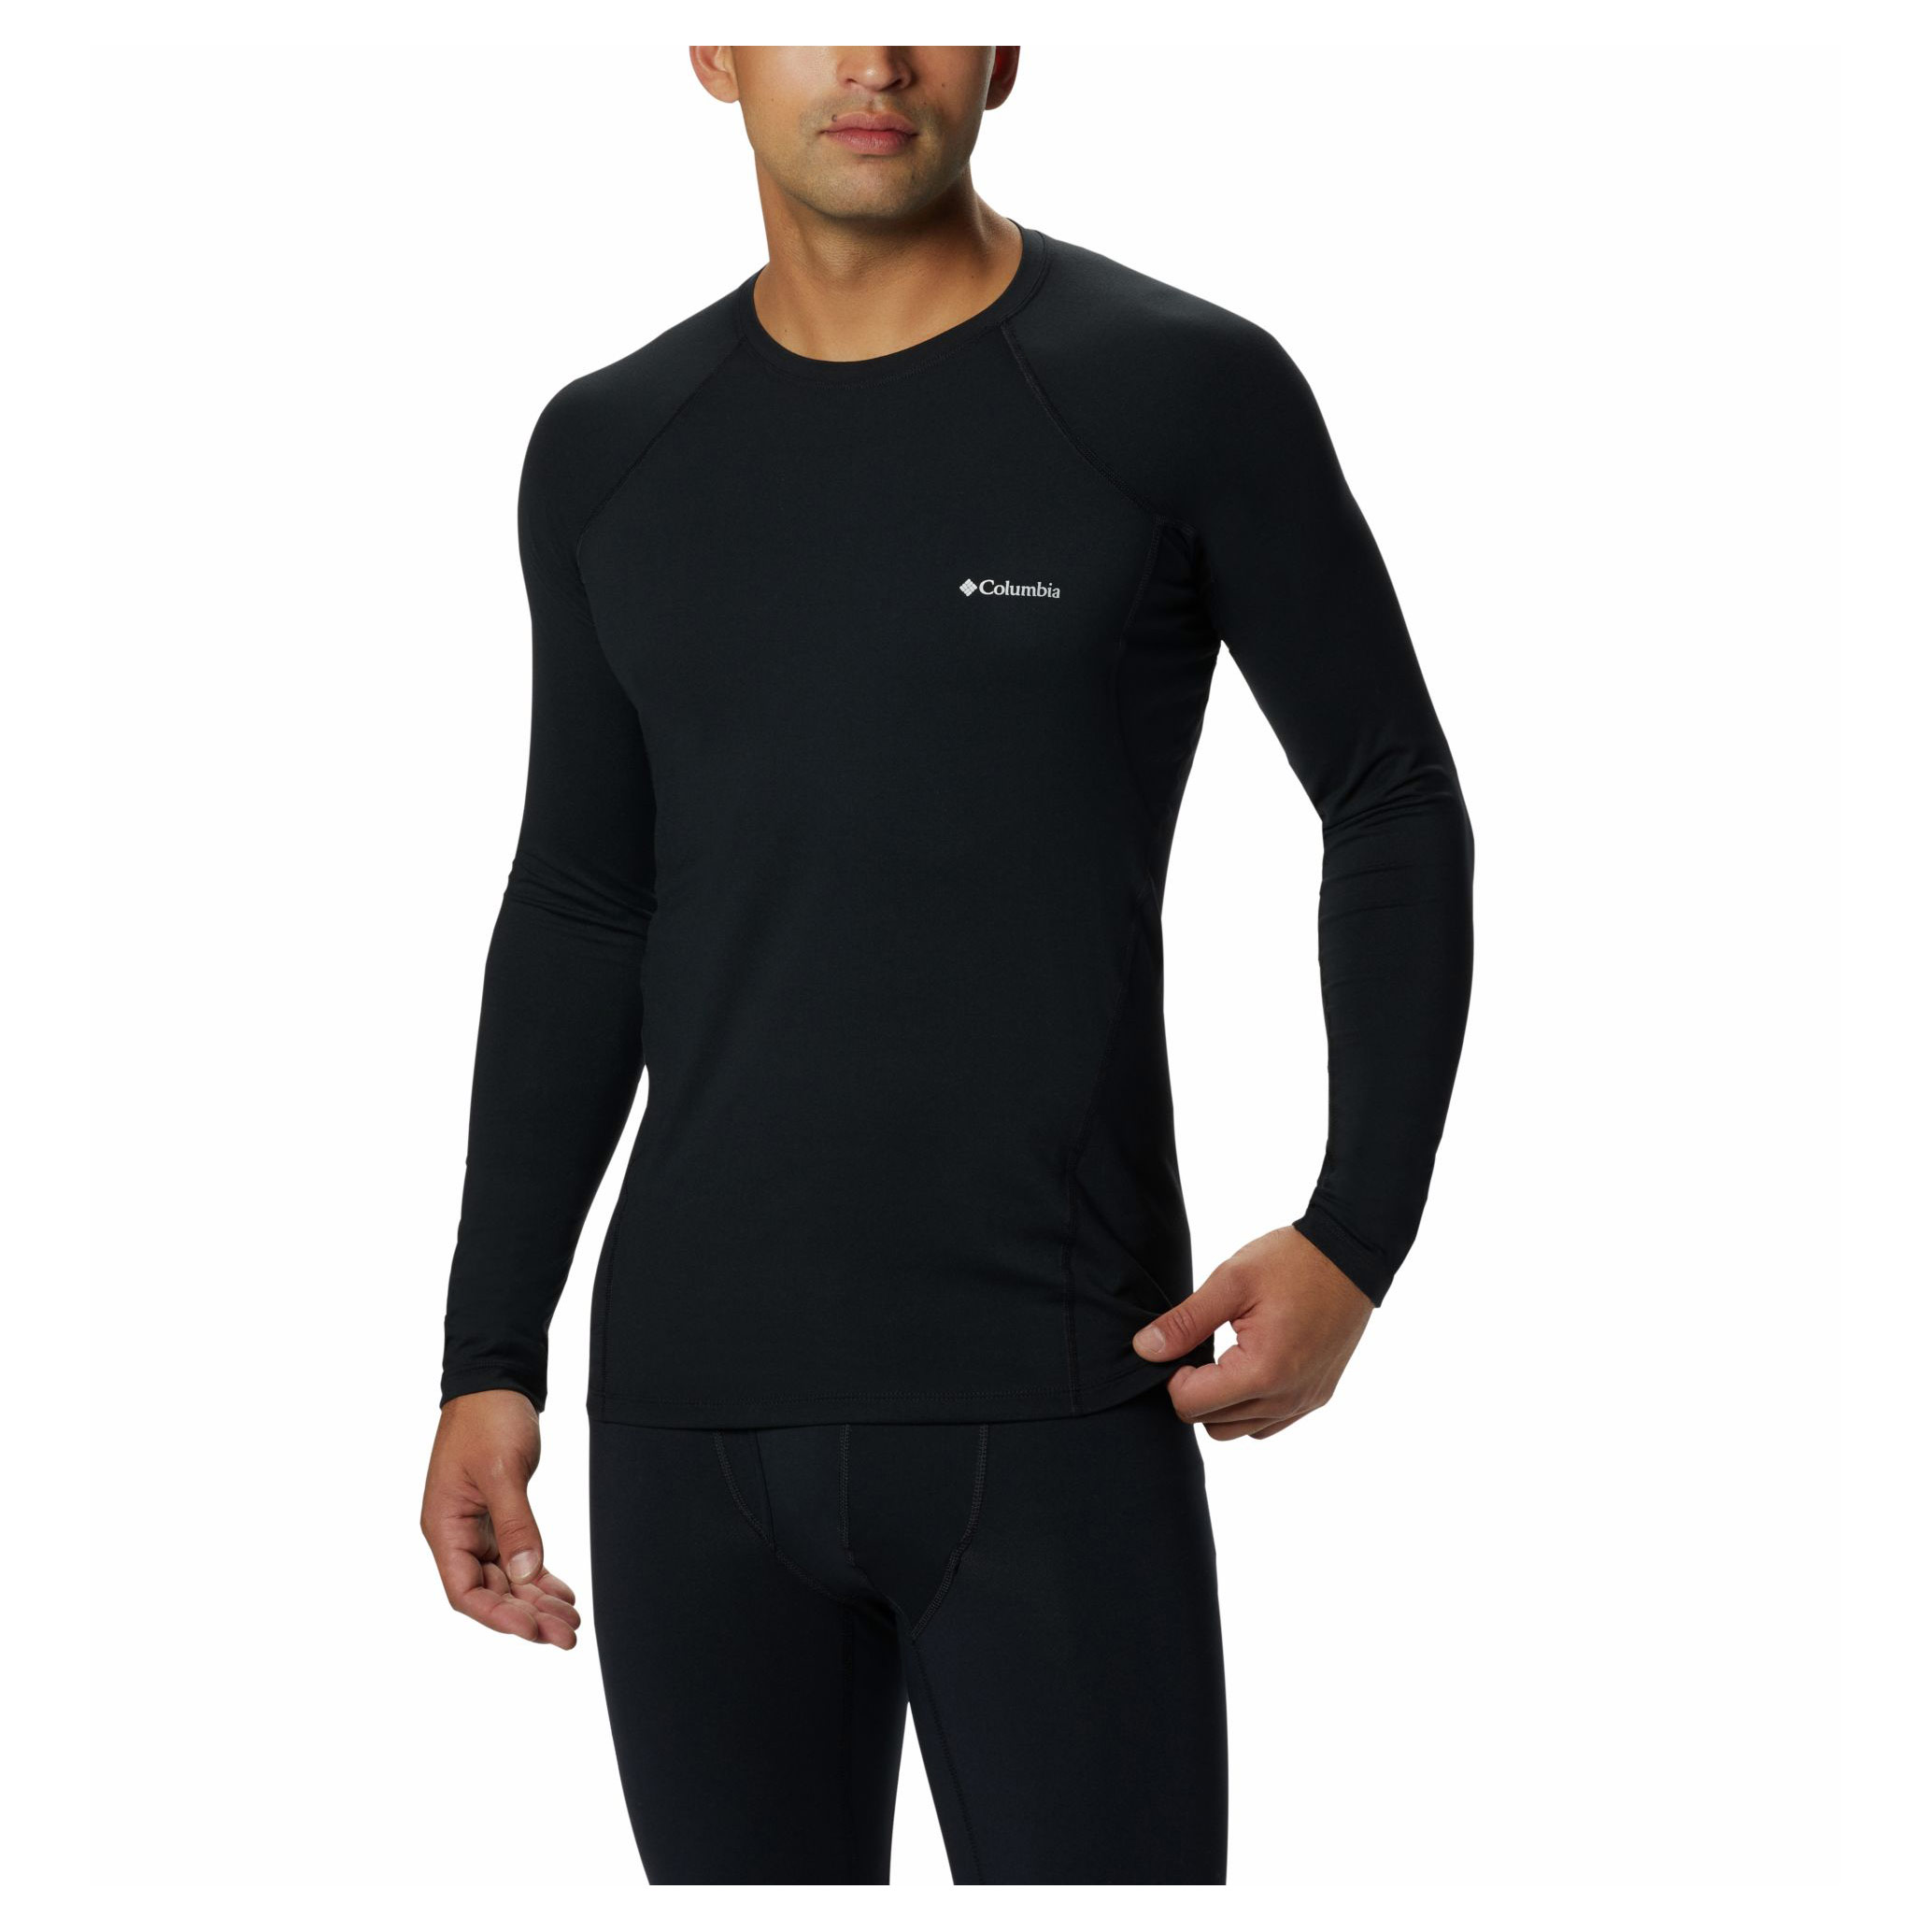 MIDWEIGHT STRETCH LS